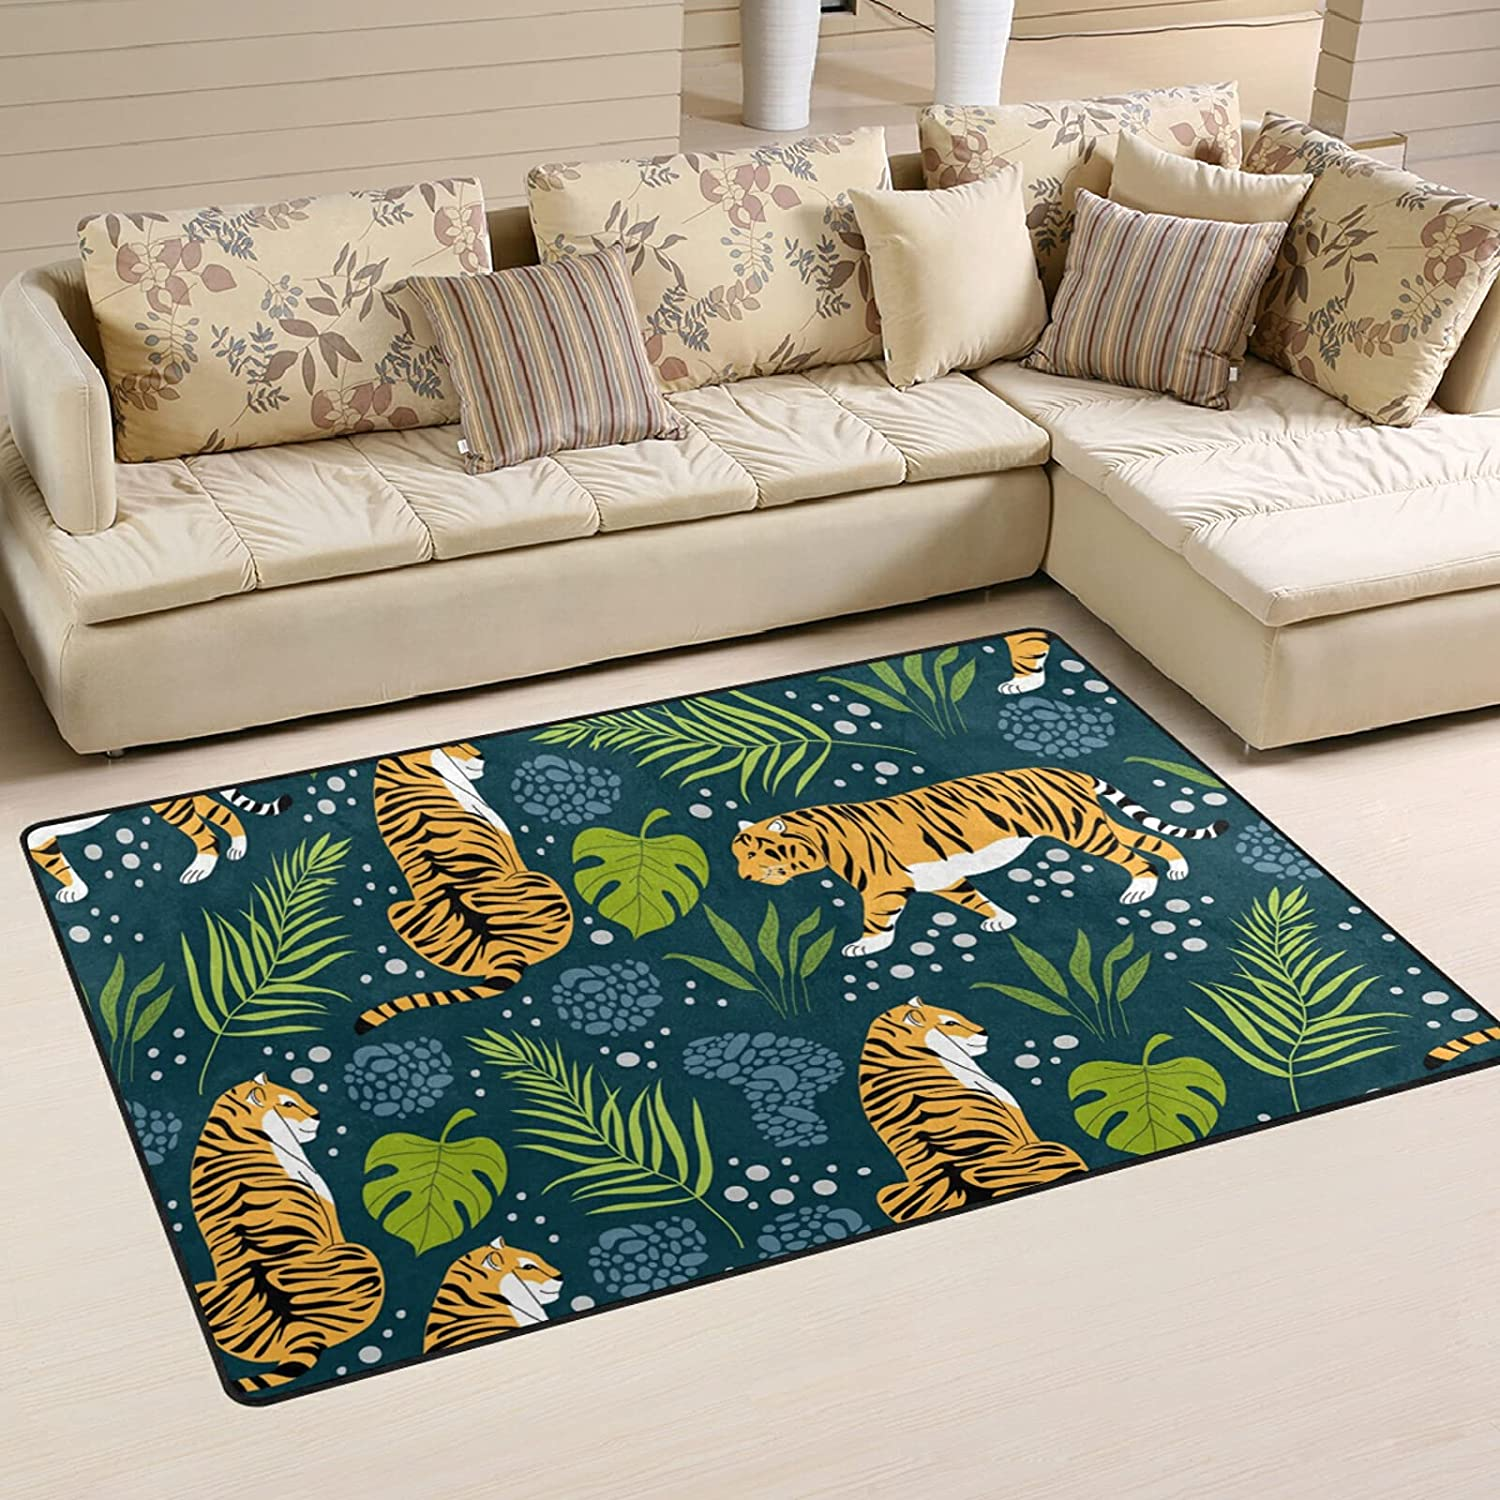 Award-winning store Tropical Tigers Leaves Large Max 80% OFF Soft Rugs Rug Playmat Nursery Area